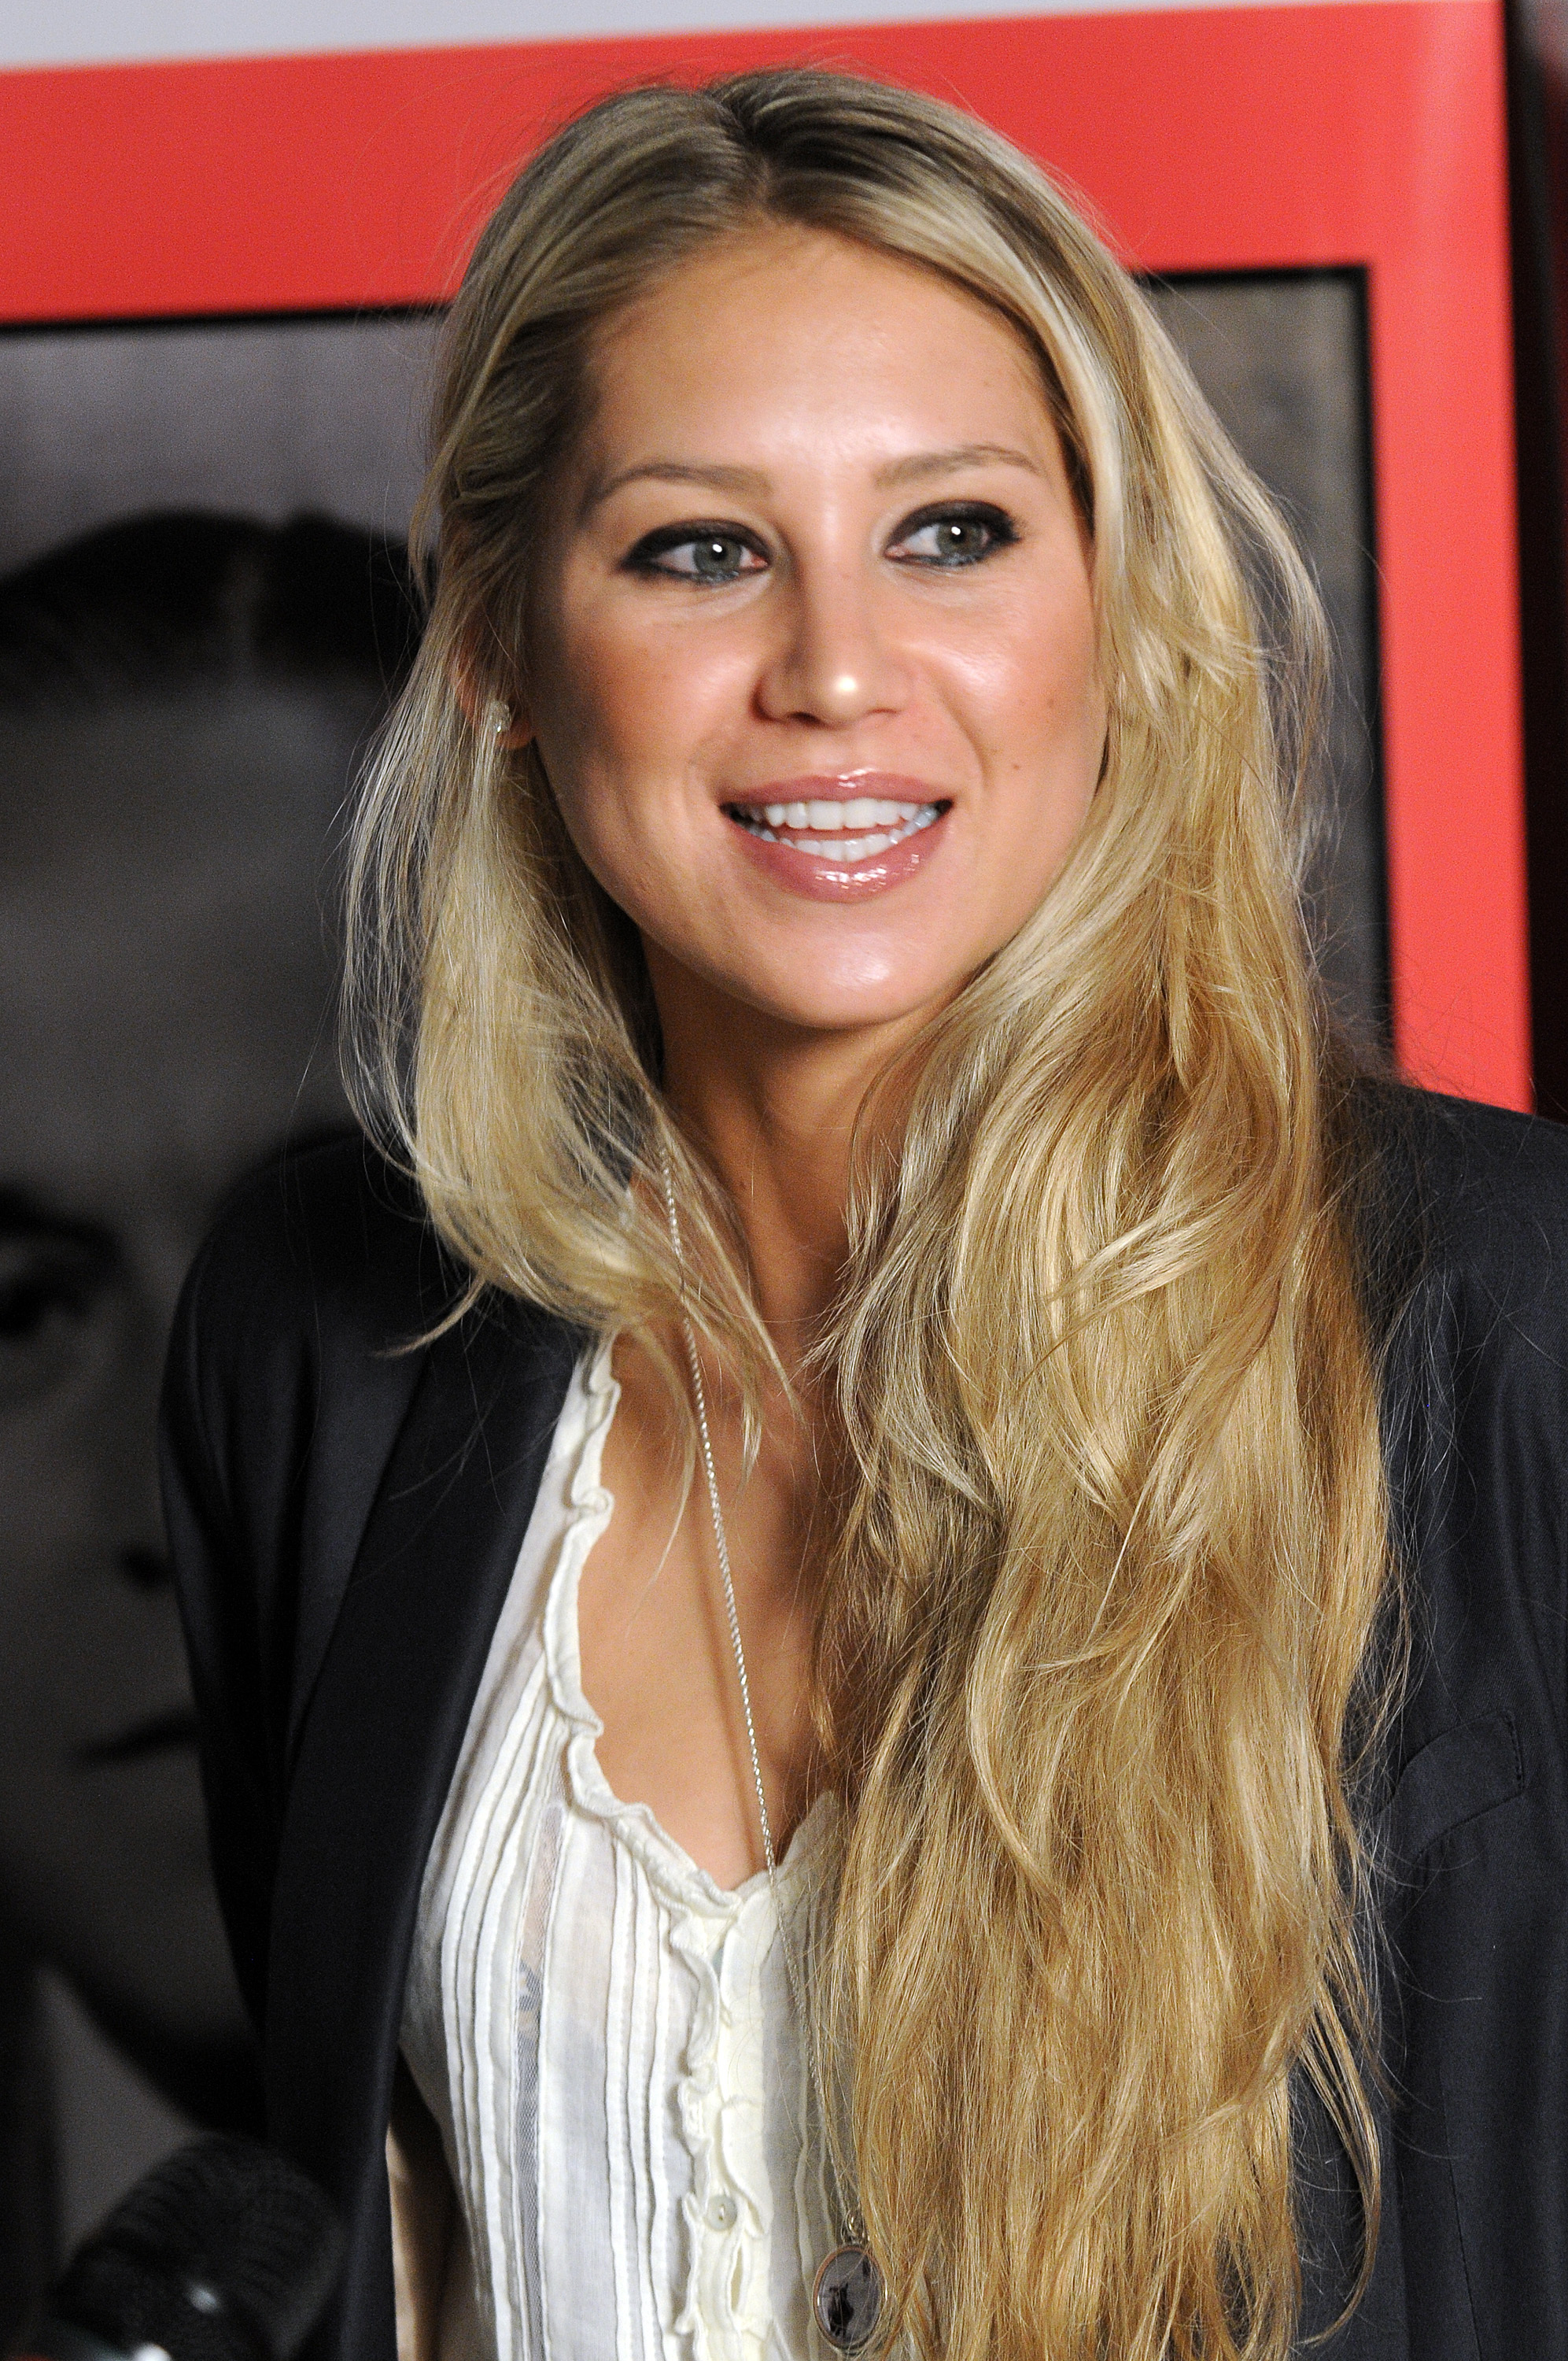 Anna Kournikova - Page 44 - Female Athletes - Bellazon Anna Kurnikova